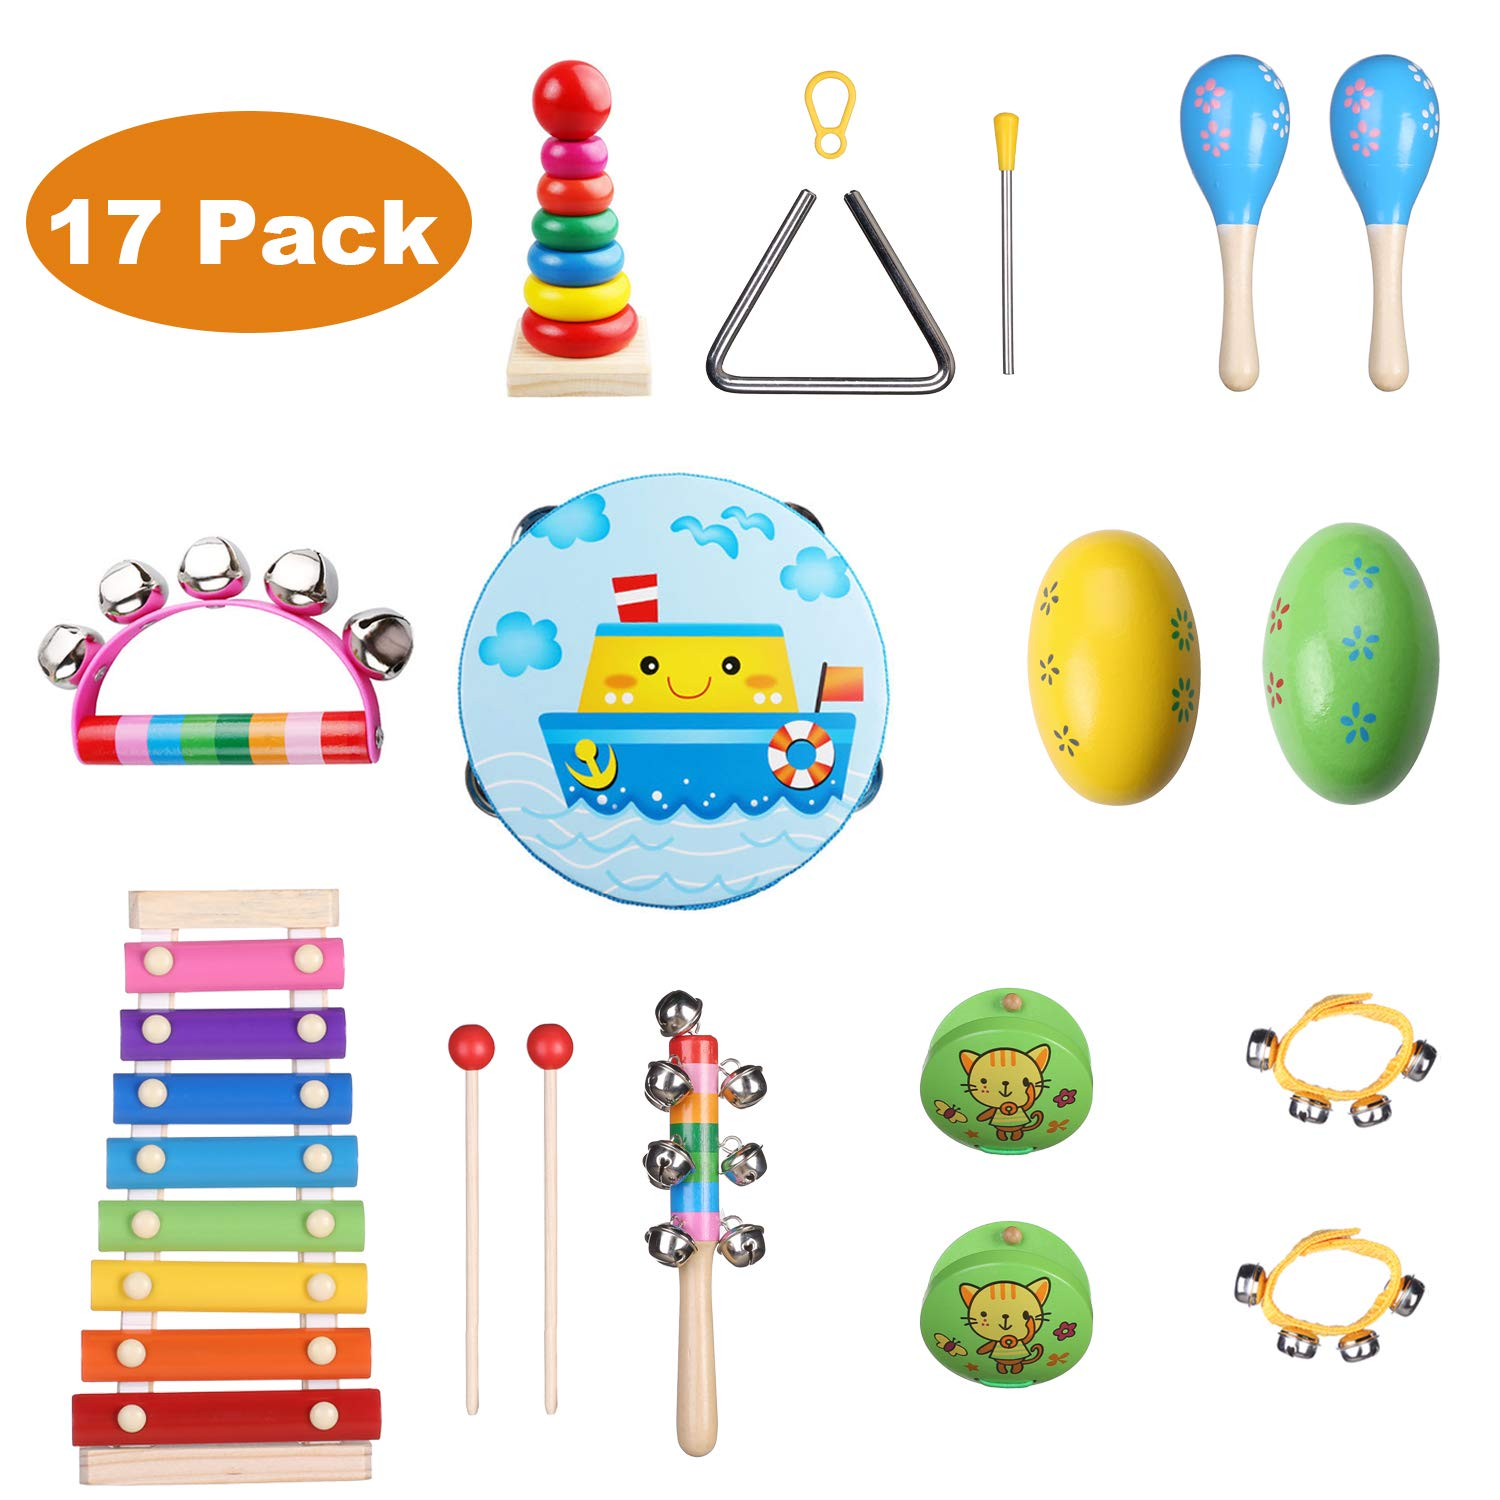 Childom Kids Musical Instruments 17PCS Wood Percussion Xylophone Toys for Boys and Girls,Child Wooden Music Shakers Percussion Instruments Tambourine Birthday Gifts Present